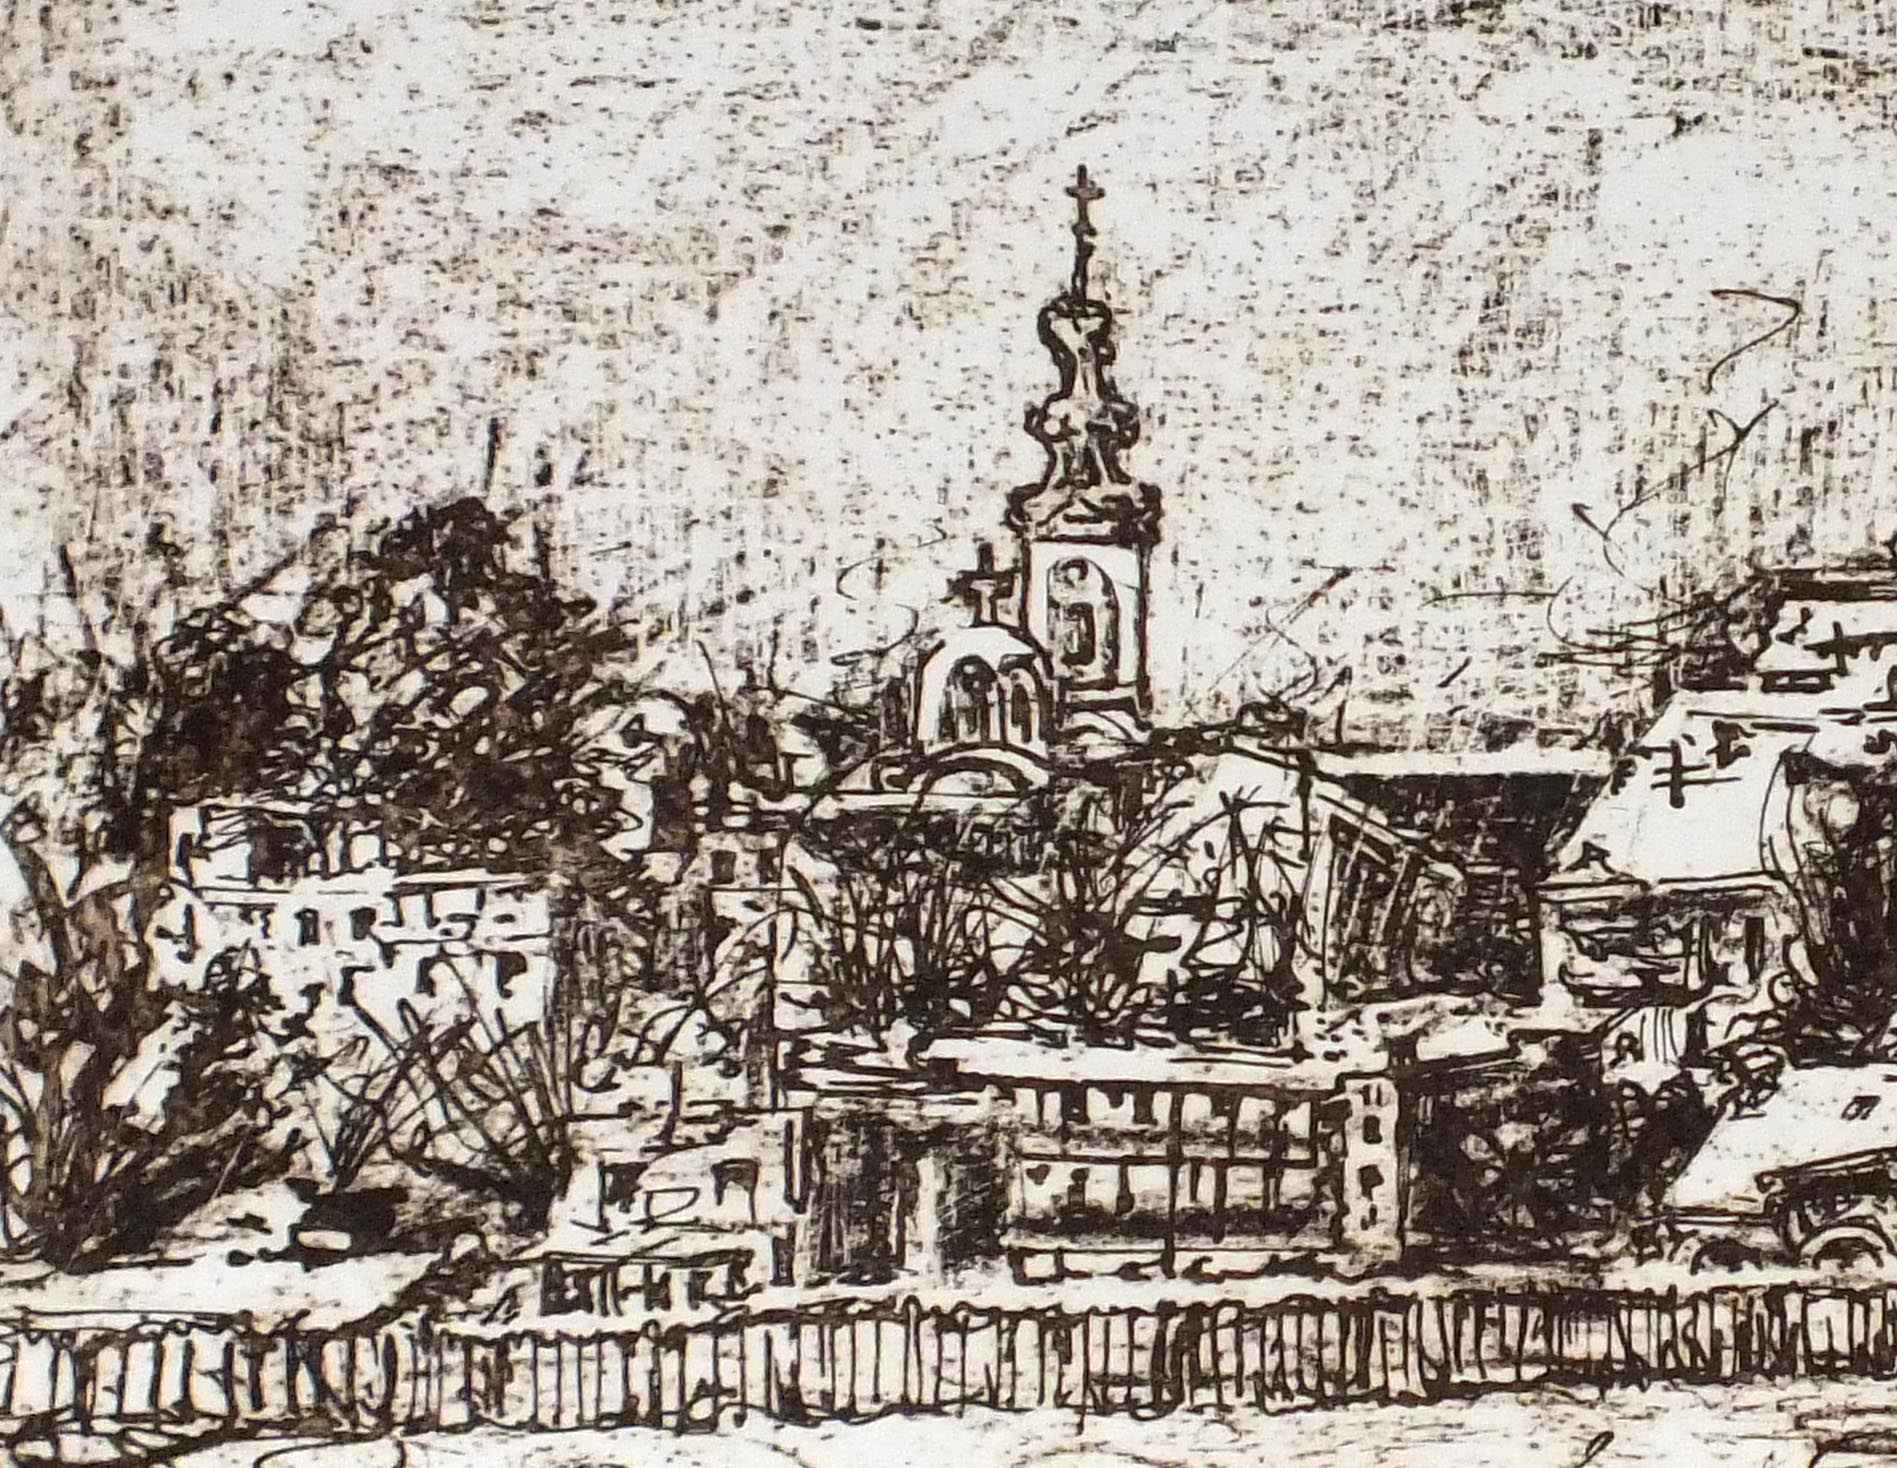 Belgrade in Winter, photo-etching by Ali Savic